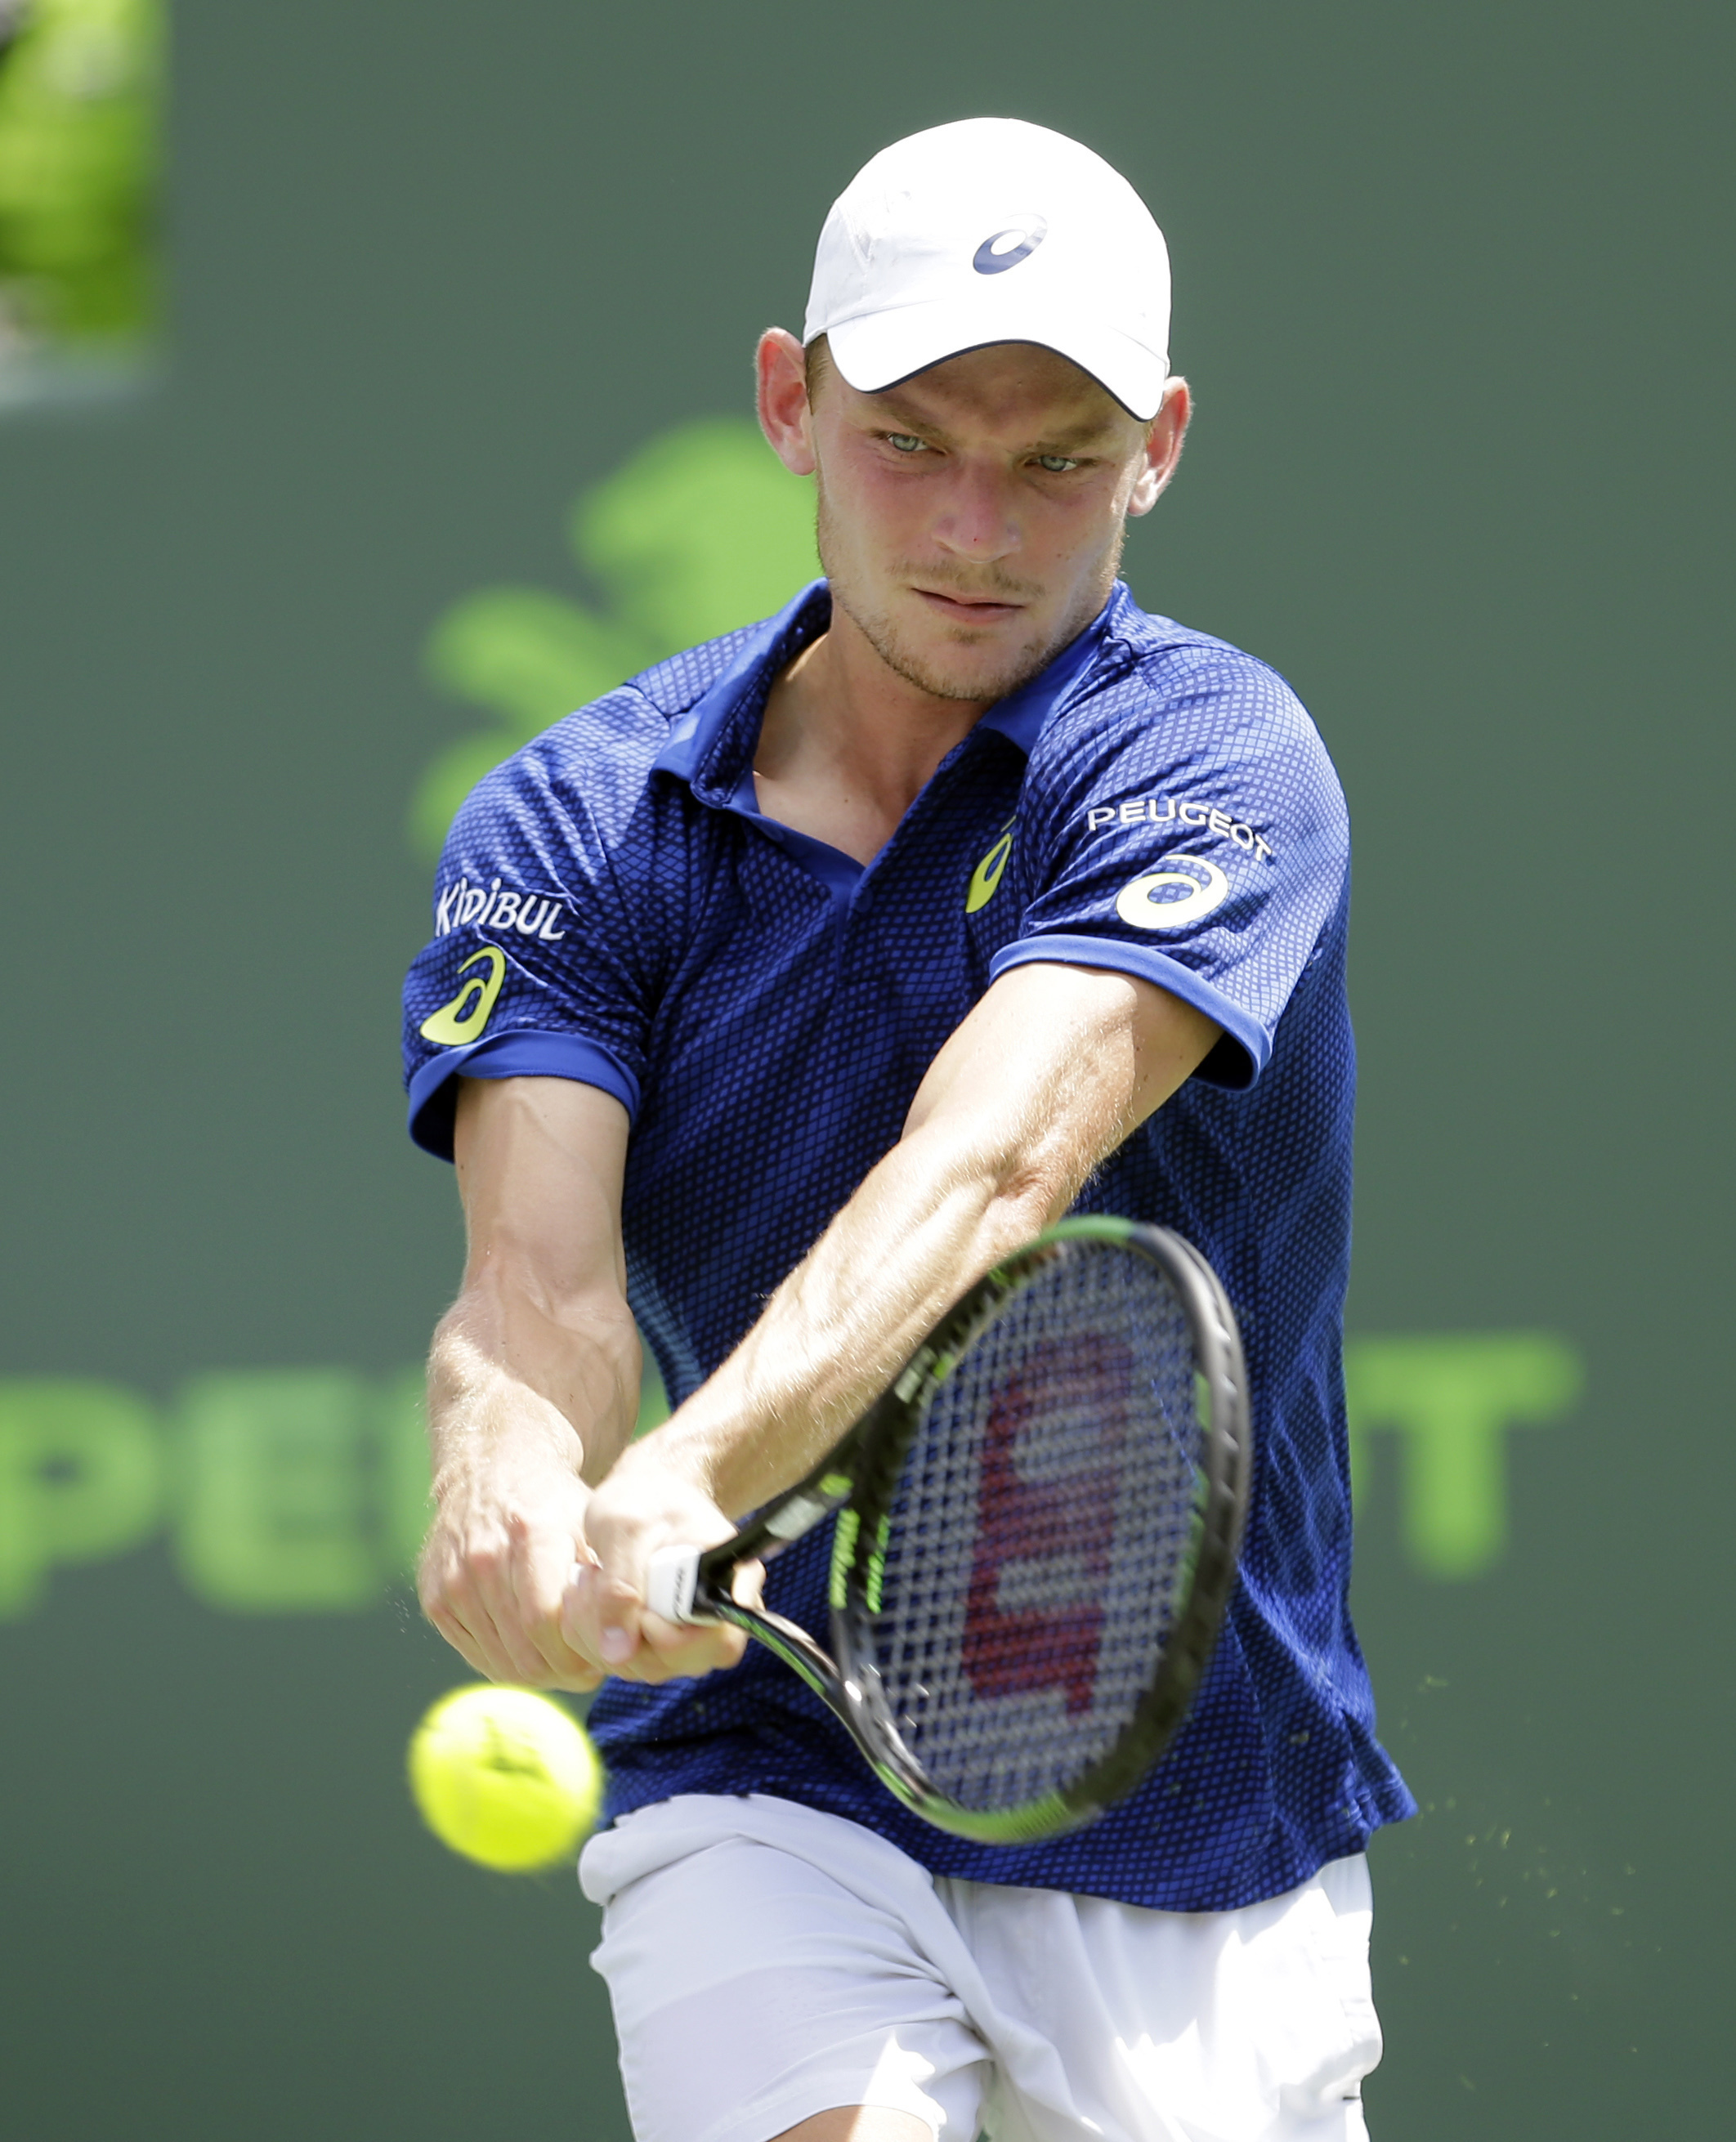 David Goffin, of Belgium, returns to Novak Djokovic, of Serbia, during a semifinal match at the Miami Open tennis tournament in Key Biscayne, Fla., Friday, April 1, 2016. Djokovic won a thrilling tiebreaker and advanced to the Miami Open final by beating